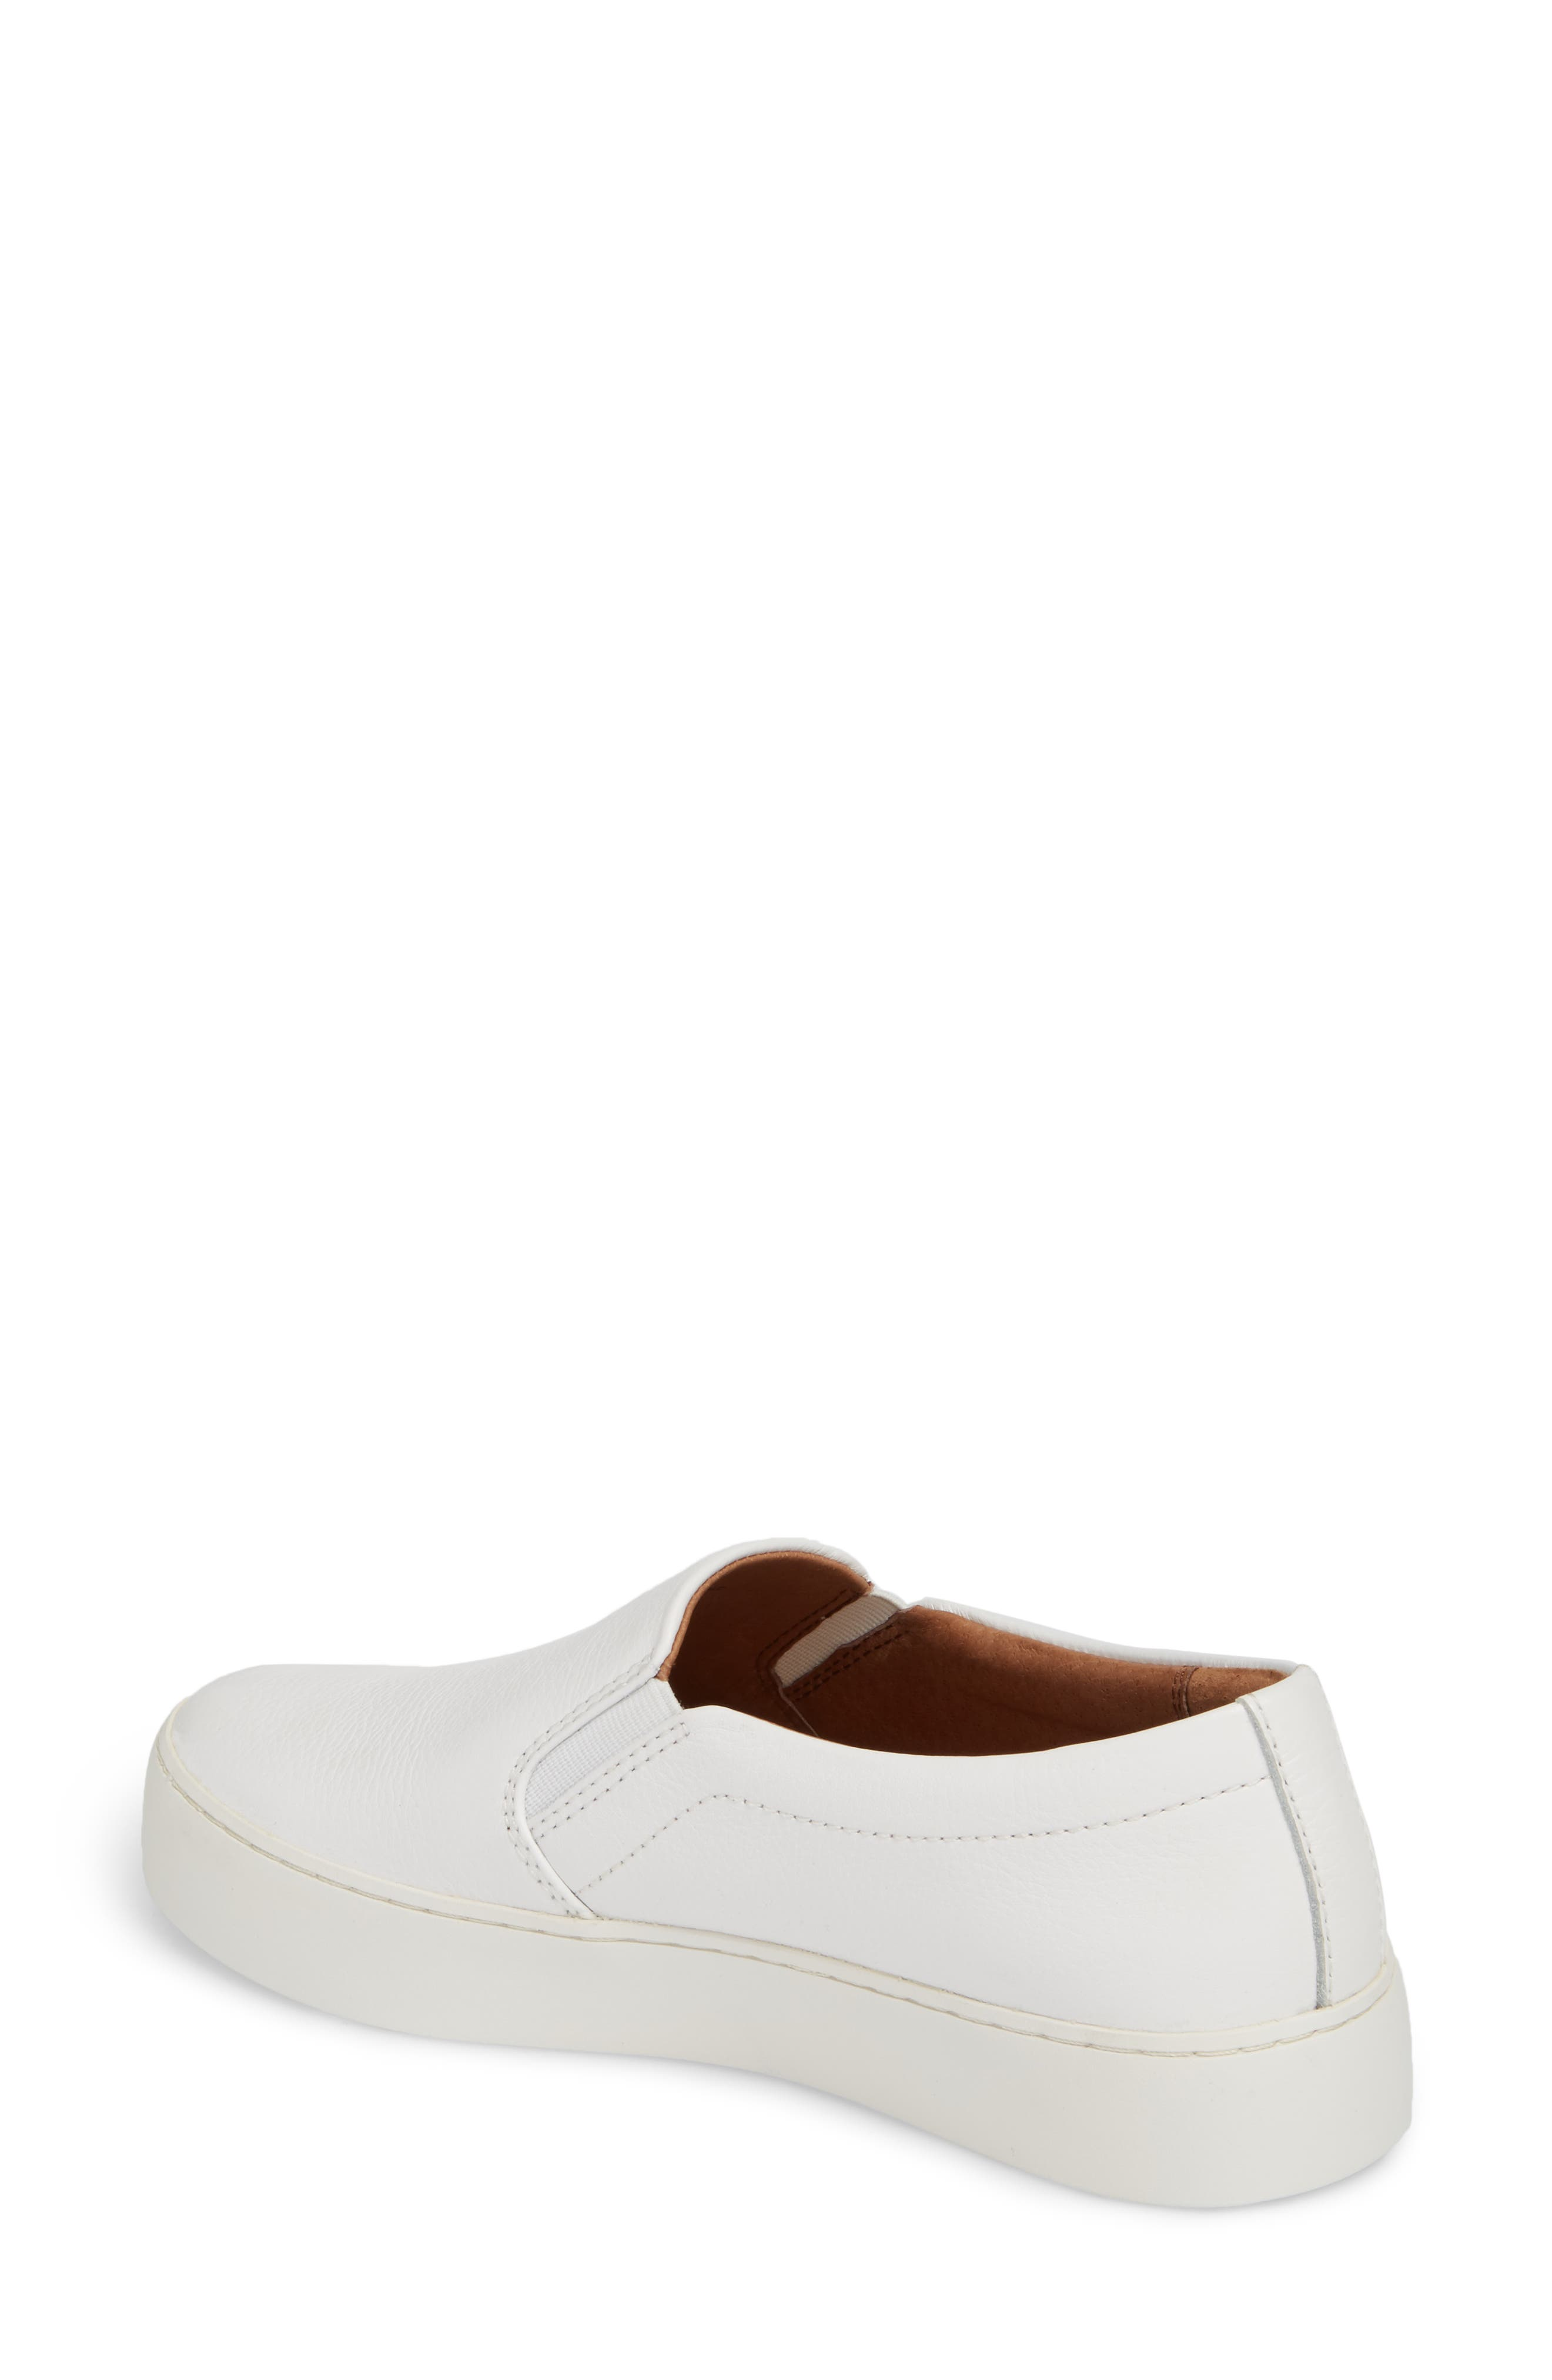 Lena Slip-On Sneaker,                             Alternate thumbnail 2, color,                             White Leather